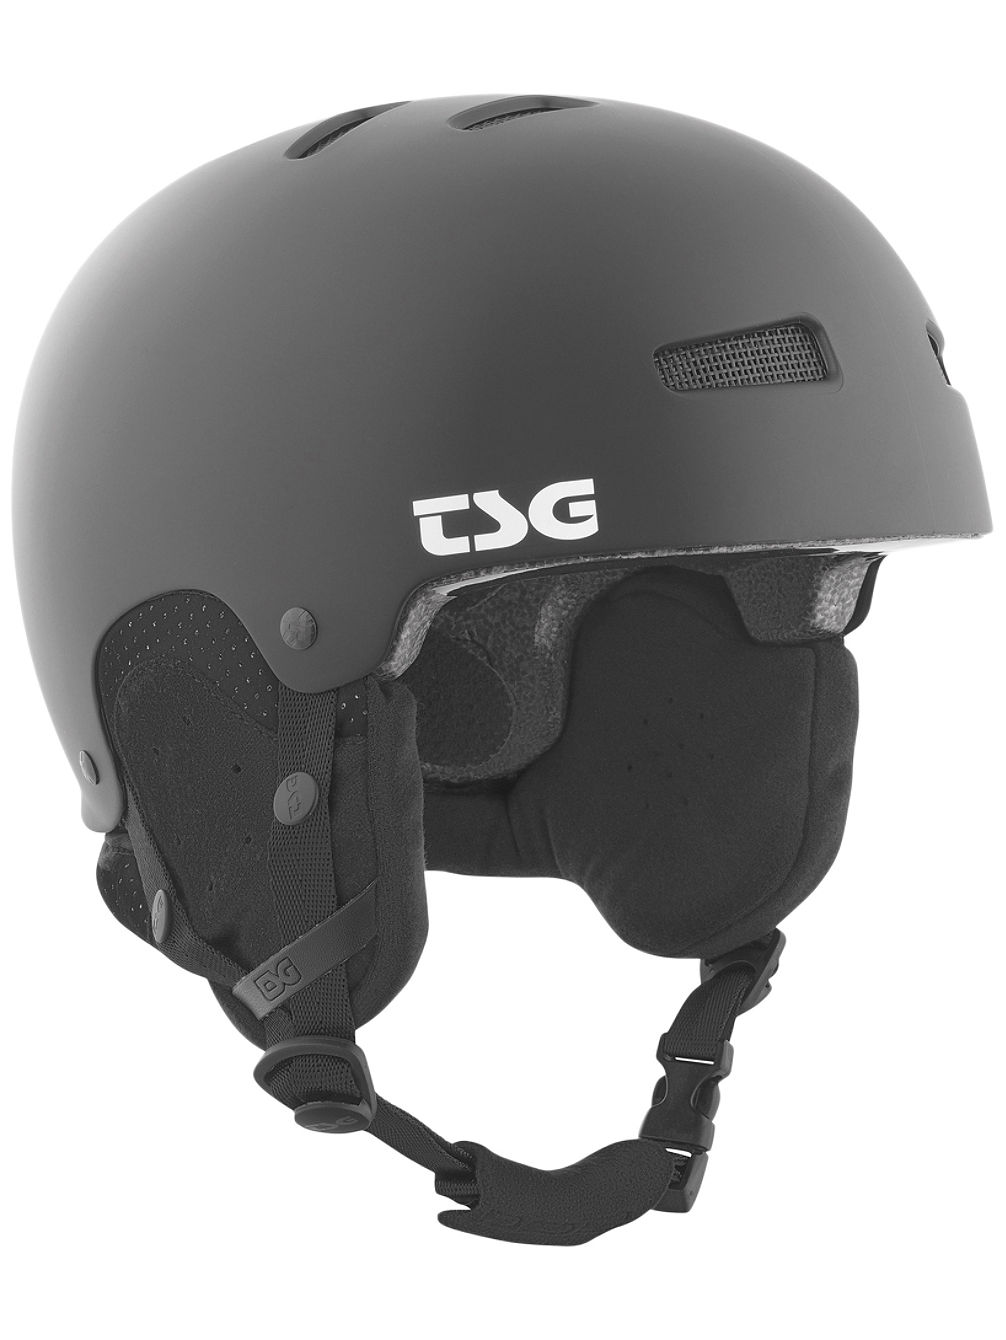 6b940ae4ee Buy TSG Gravity Snowboard Helmet online at Blue Tomato